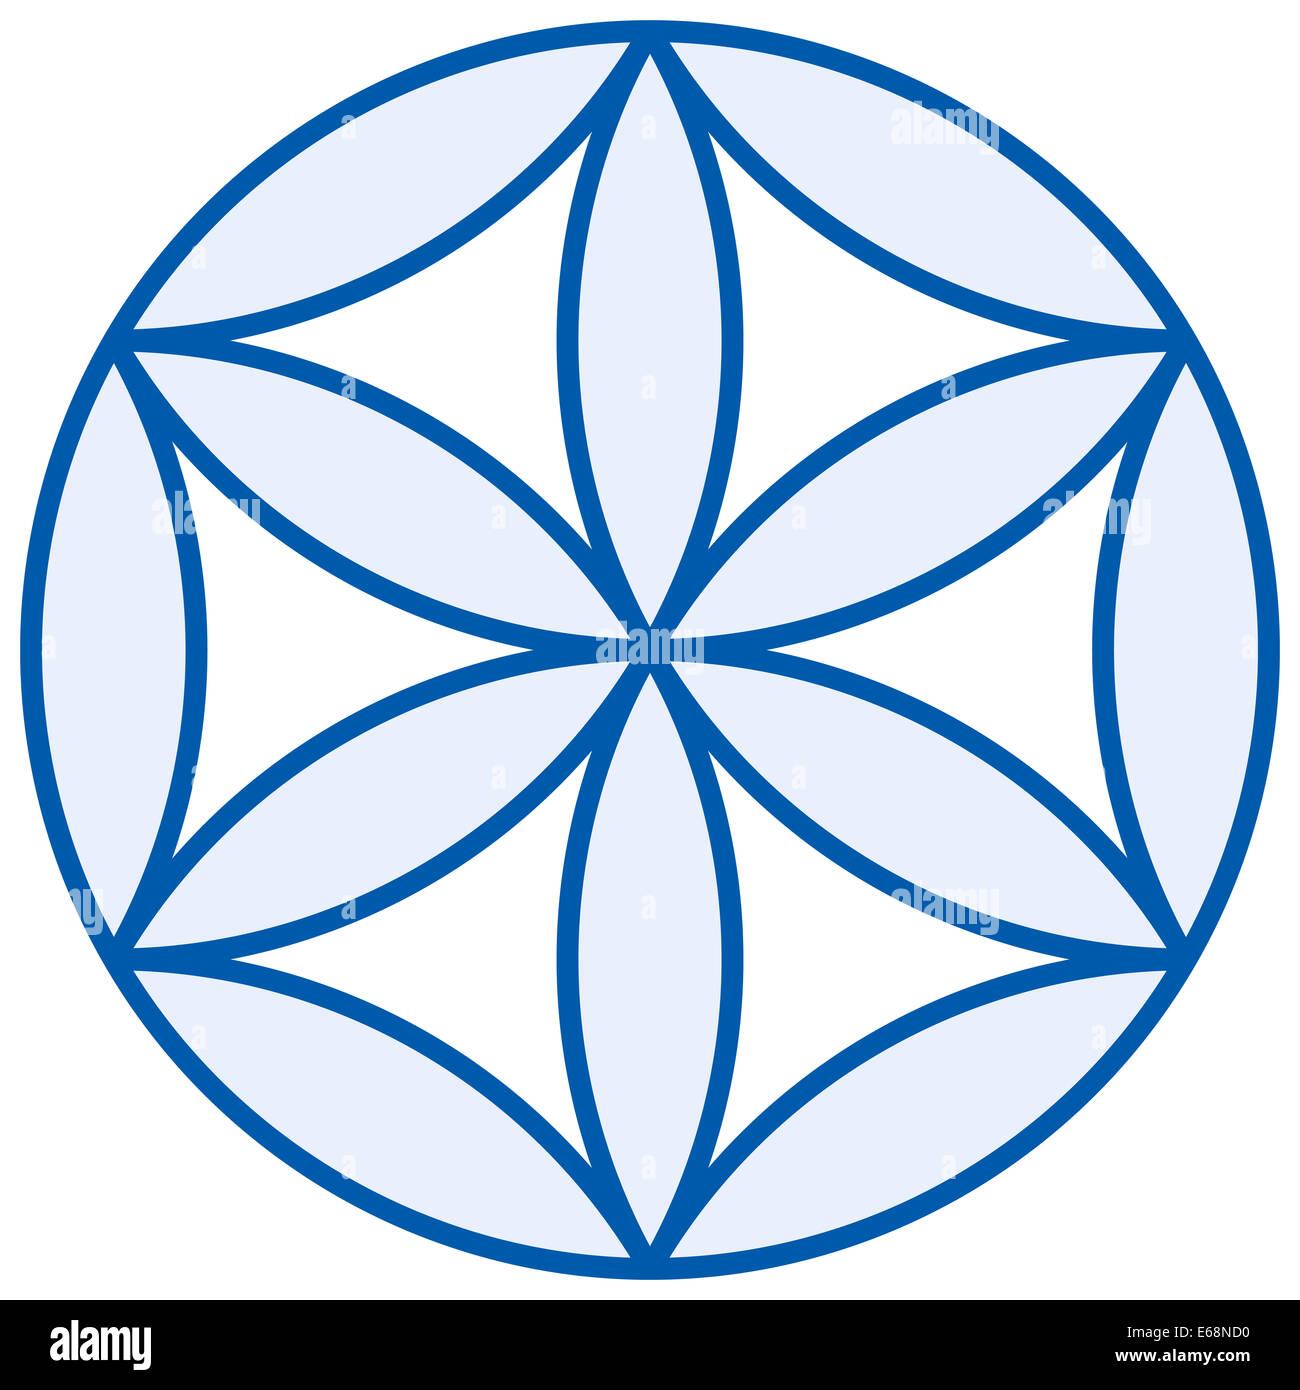 Baby Flower of Life - Stock Image